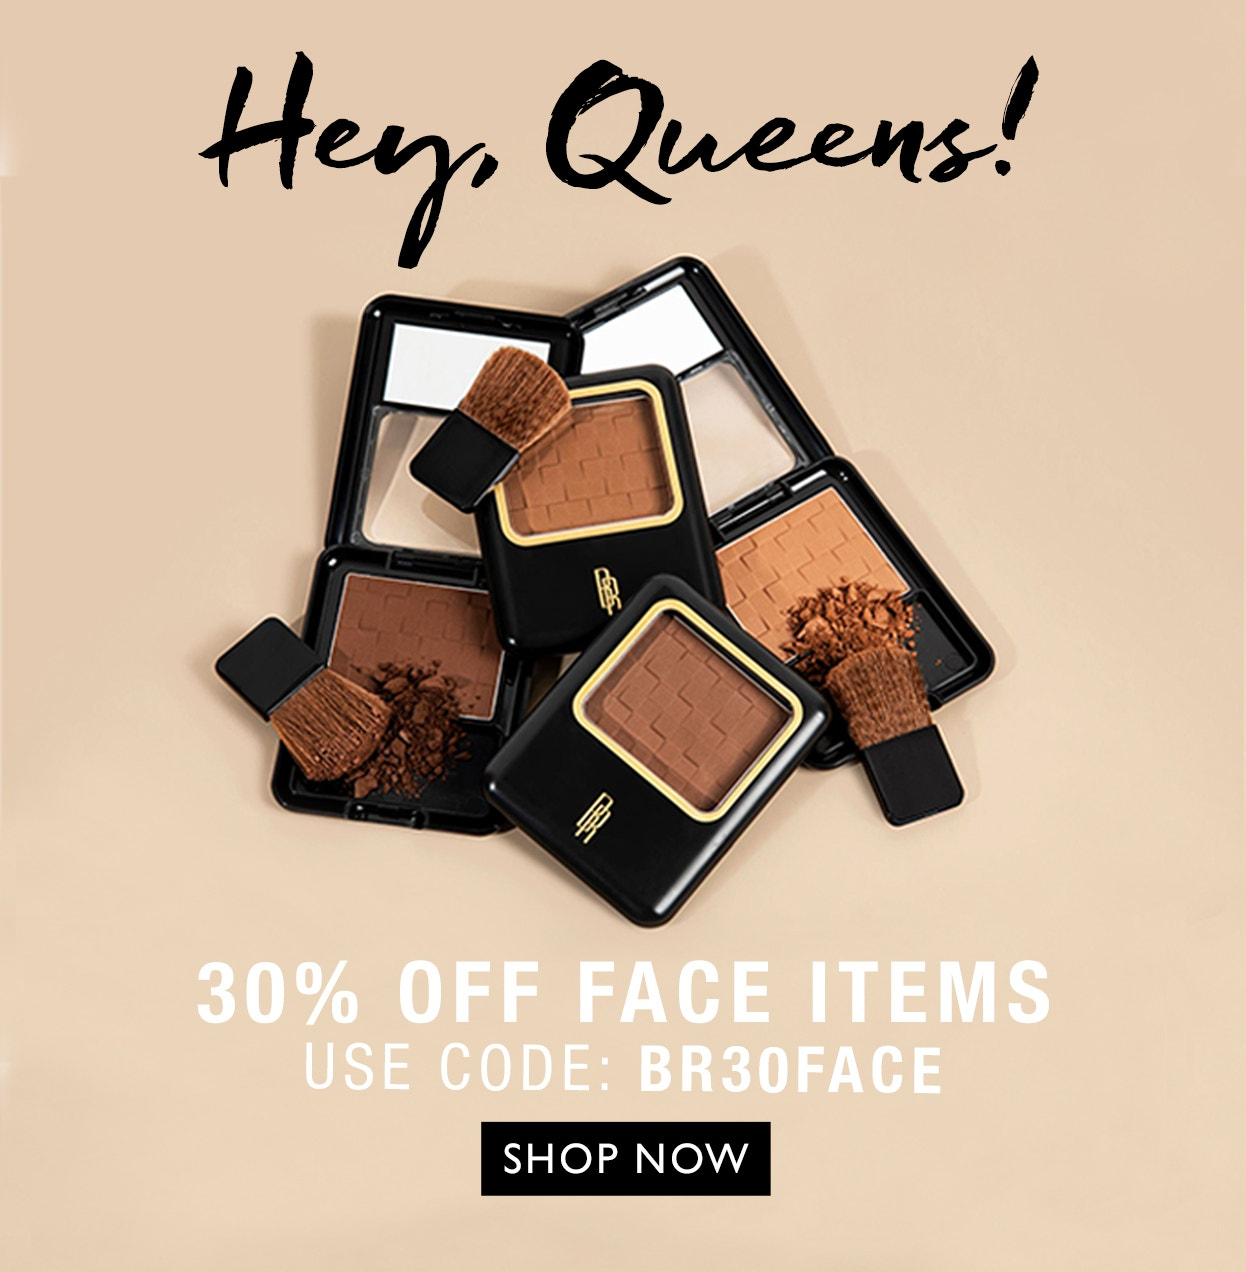 Black Radiance | Hey Queens | 30% Off Face Items | USE CODE: BR30FACE| CLICK HERE TO SHOP NOW